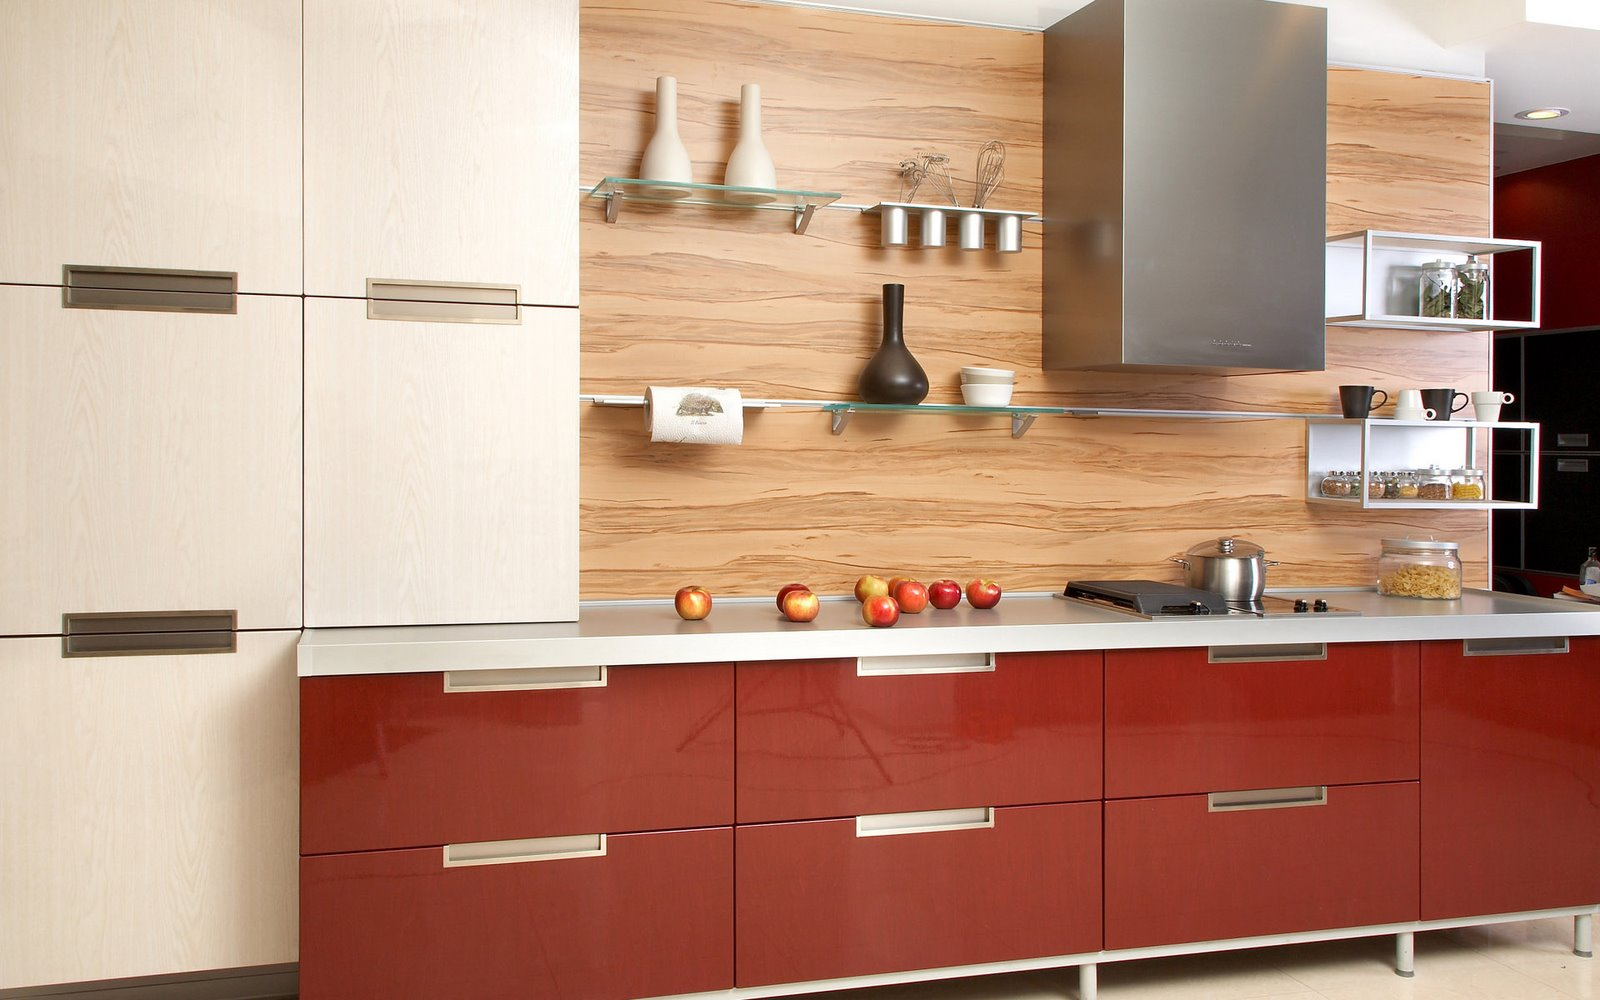 Modern wood kitchen design dream kitchens pinterest for Modern kitchen cabinets design ideas